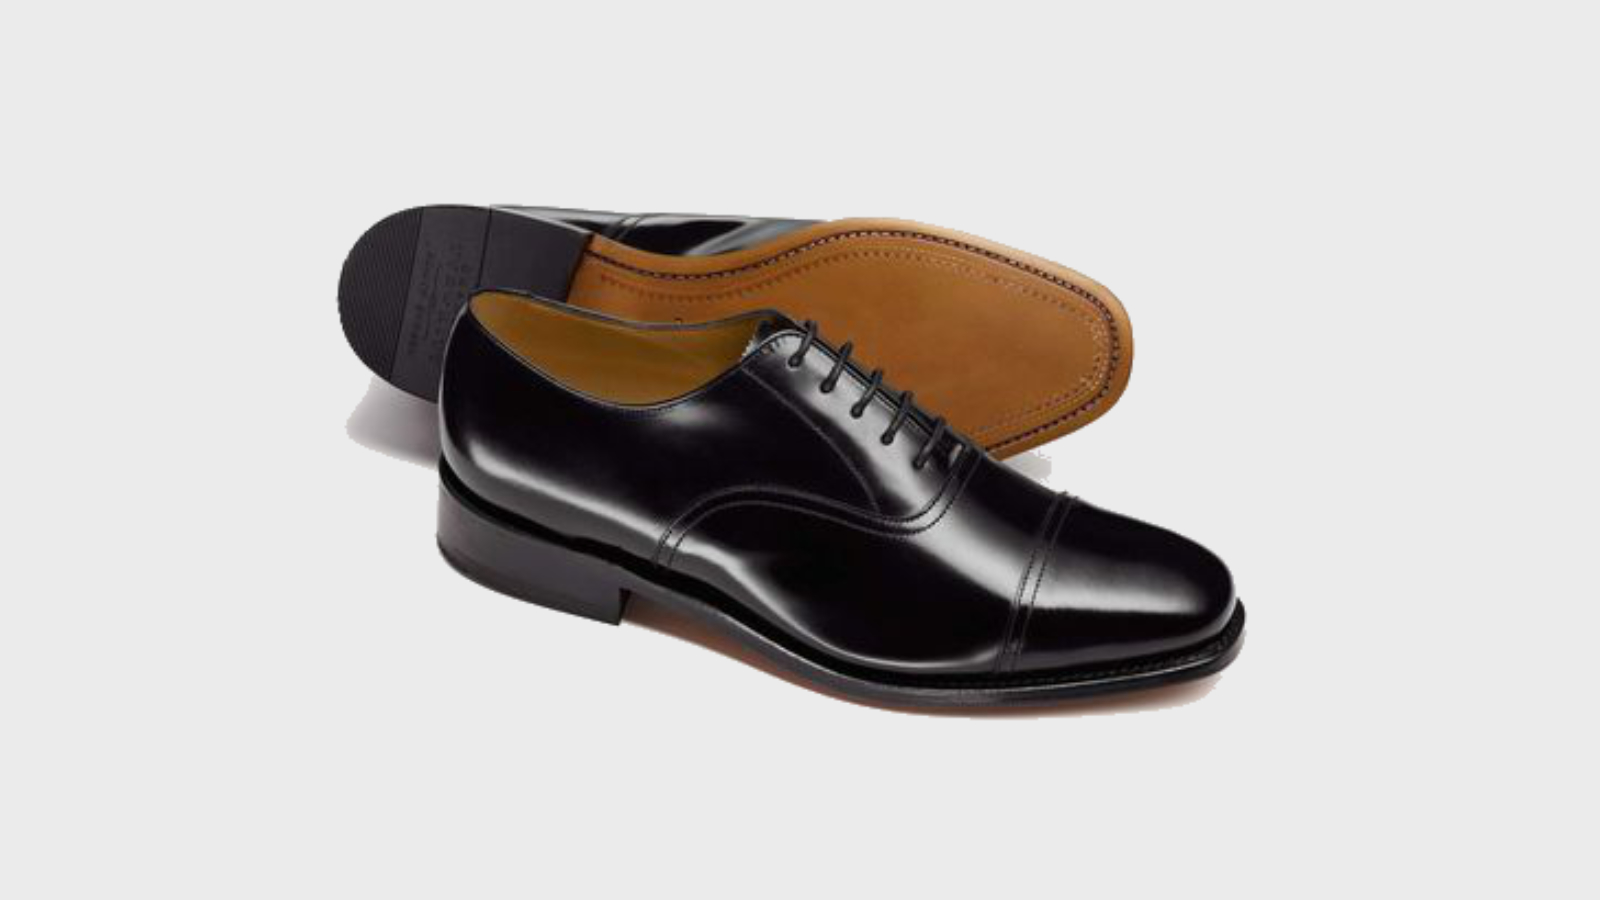 Charles Tyrwhitt Black Goodyear Welted Oxford Leather Sole Shoe Copy of Charles Tyrwhitt Black Goodyear Welted Oxford Leather Sole Shoe Men's Winter Fashion